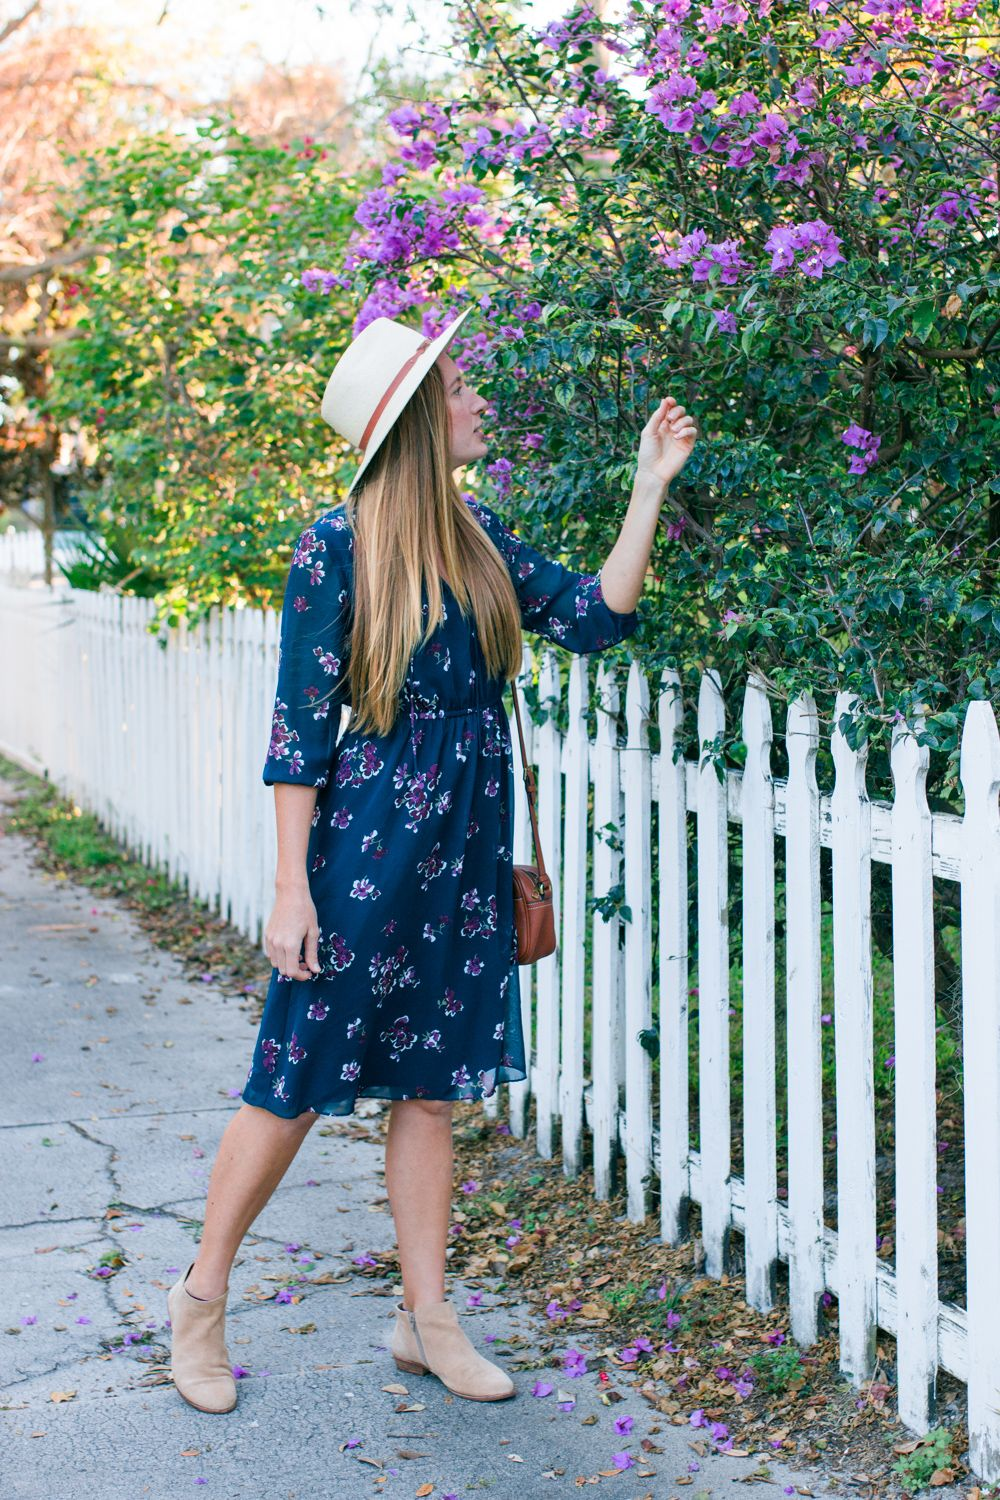 The Blue Floral Midi Dress I Plan On Wearing All Winter Sunshine Style Blue Floral Midi Dress Floral Midi Dress Midi Dress Winter [ 1500 x 1000 Pixel ]